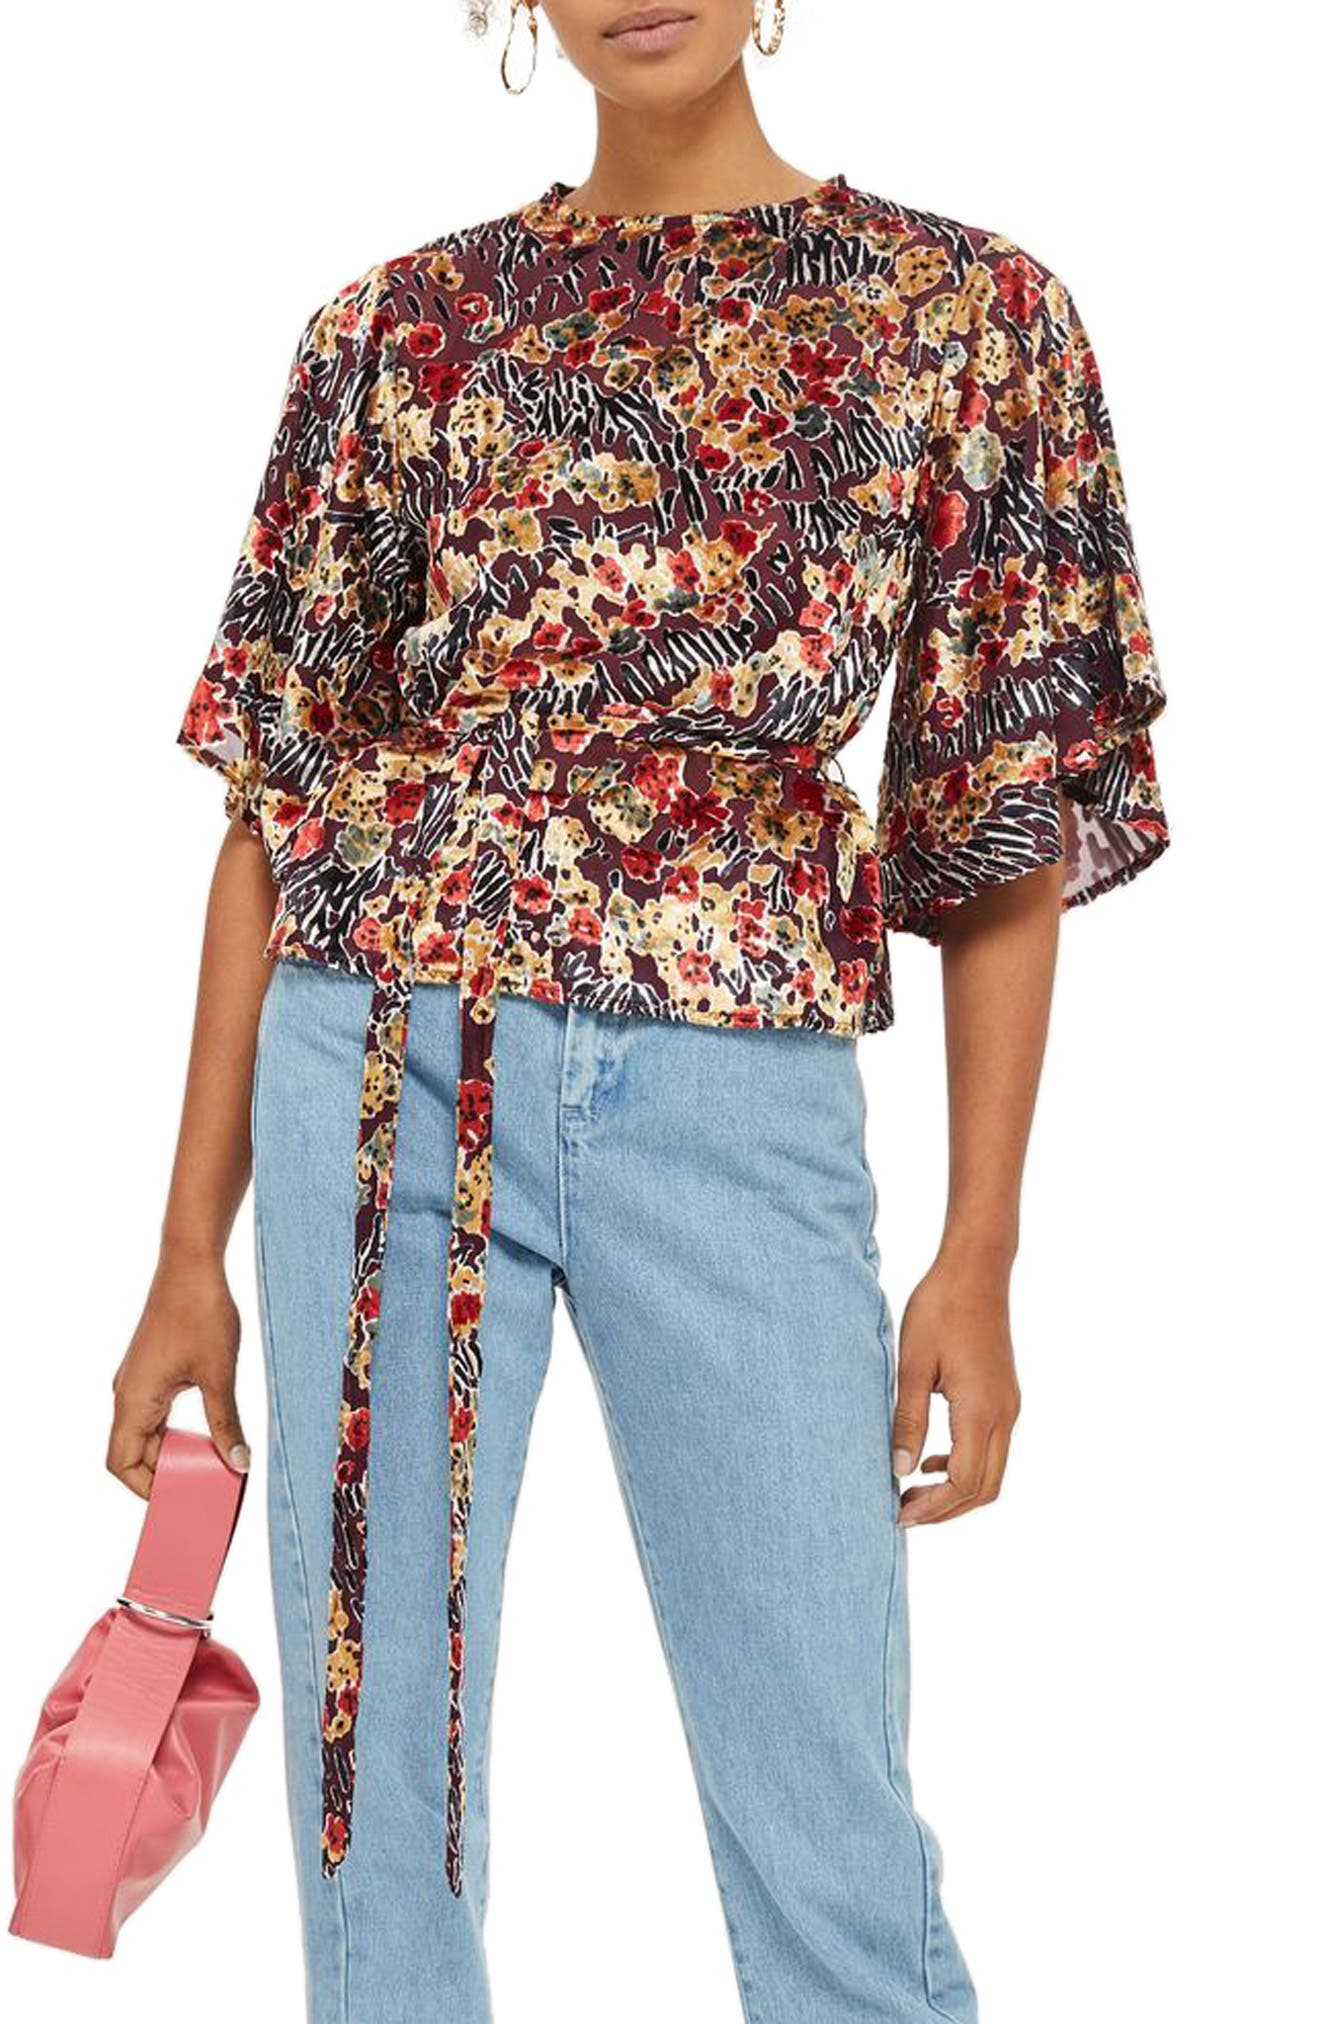 Devoré Bell Sleeve Blouse,                         Main,                         color, Red Multi